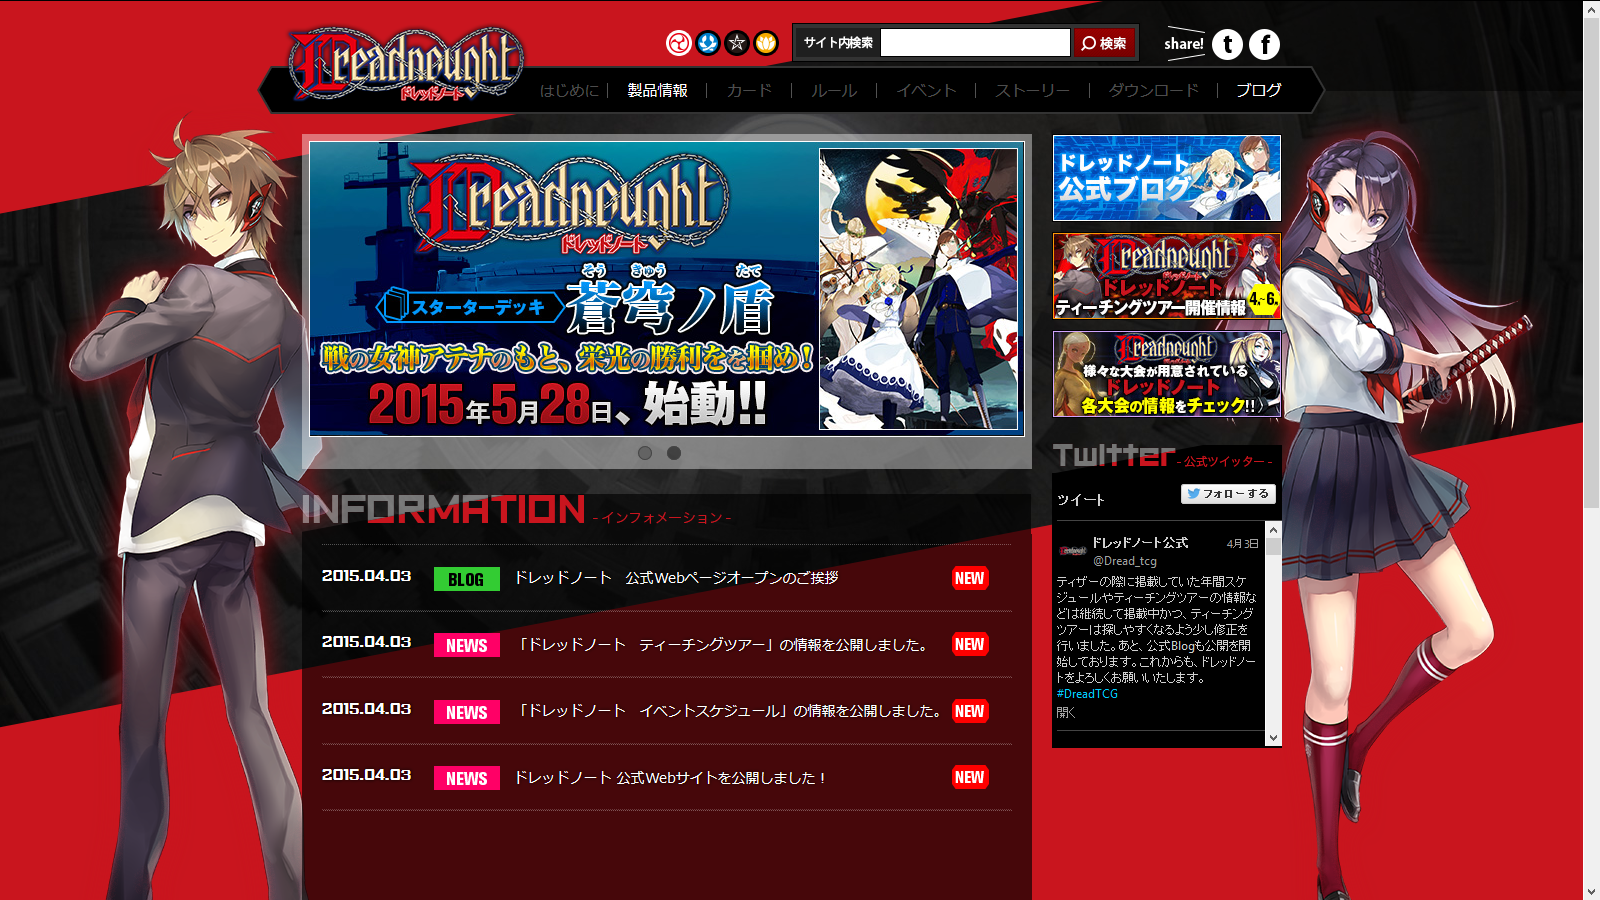 dread-tcg-website-20150403.png